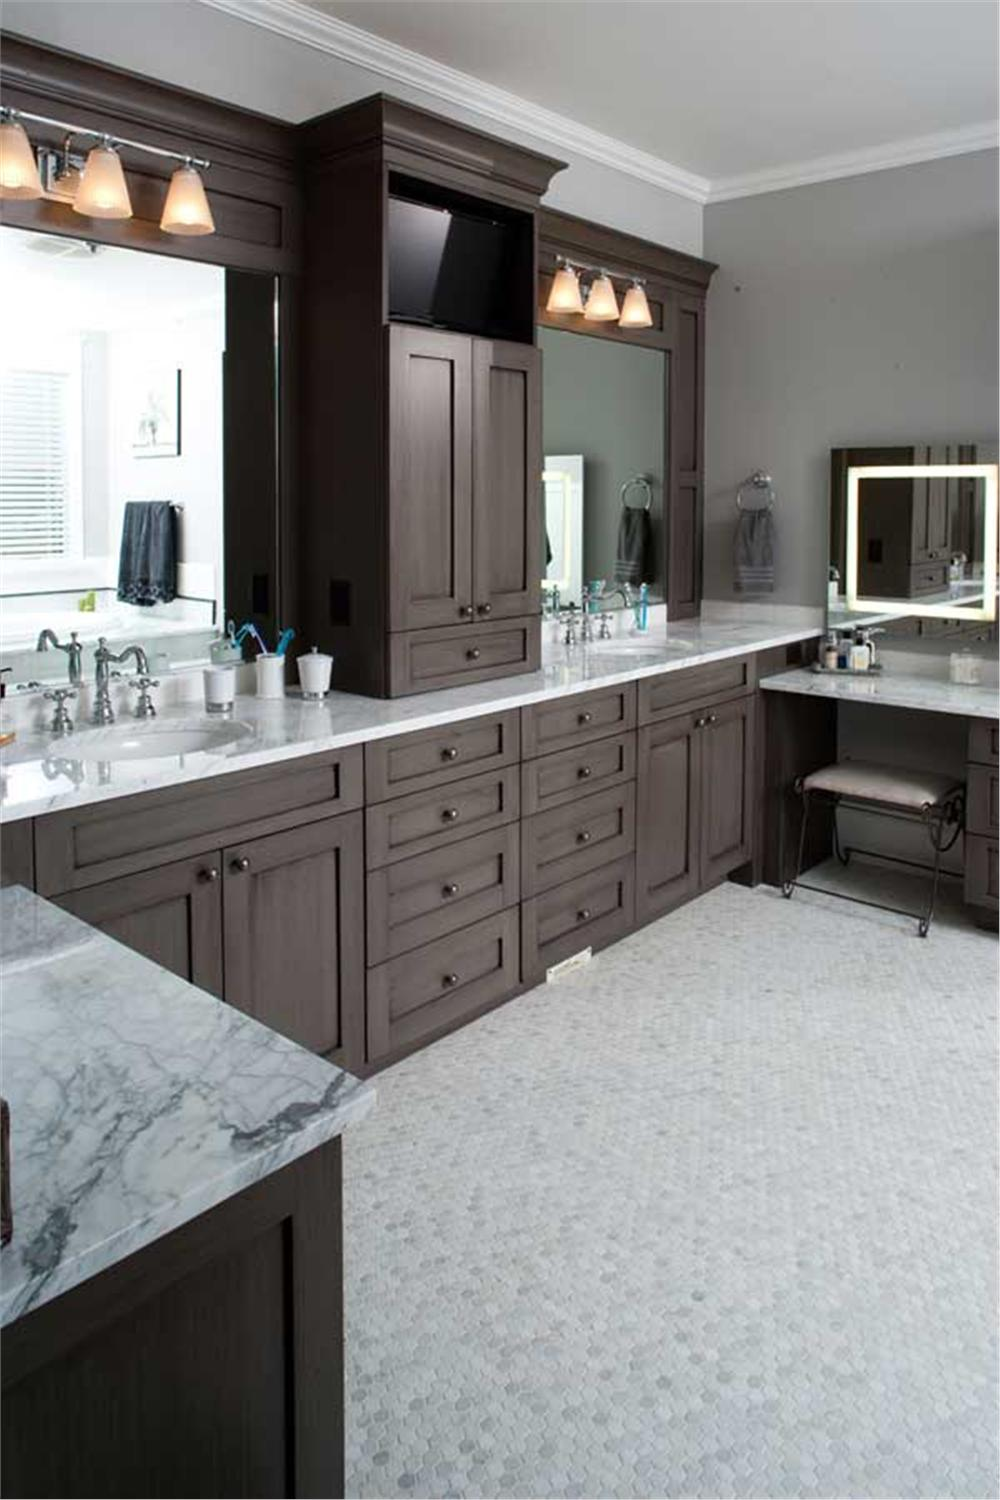 Split vanity in mater bathroom of House Plan #161-1044